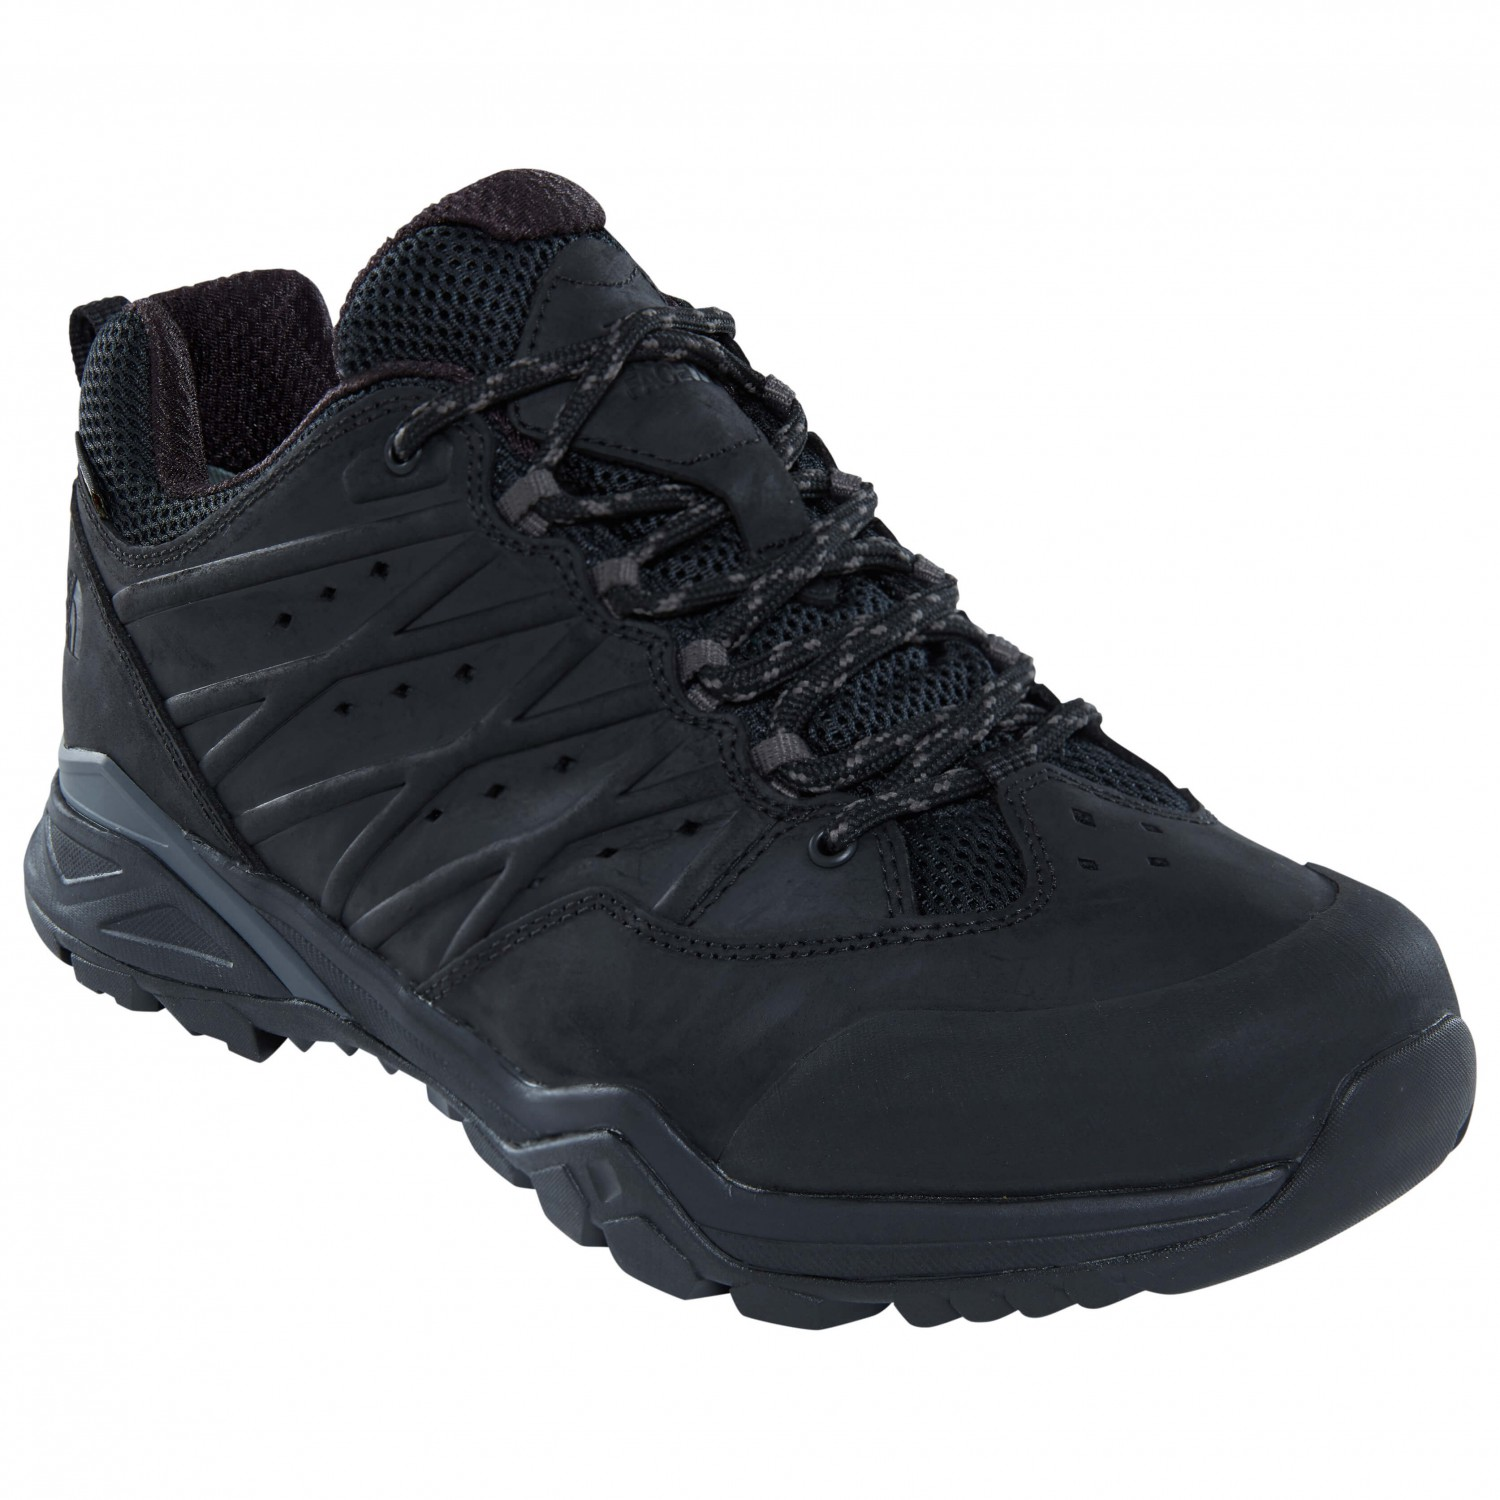 b82970a8d1e The North Face - Hedgehog Hike GTX II - Multisport shoes - TNF Black /  Graphite Grey | 11 (US)